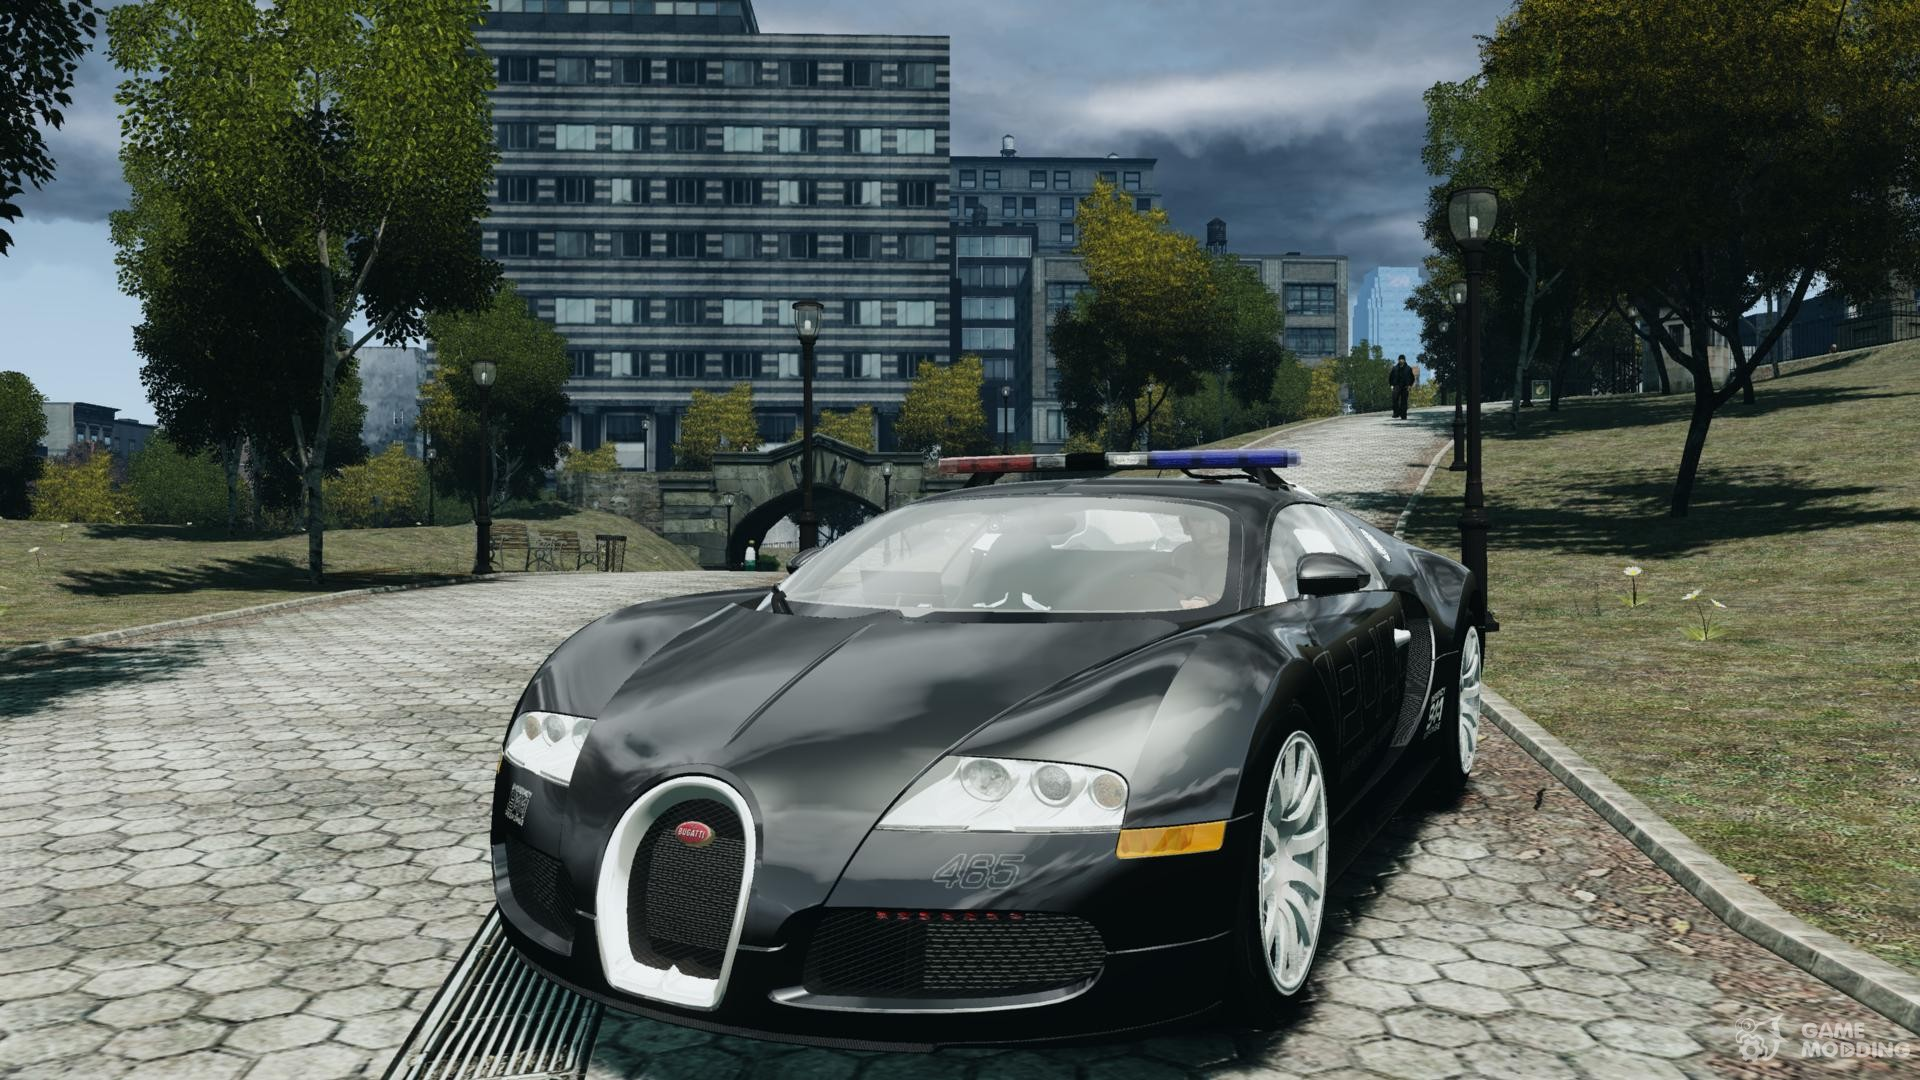 e0344931da901dac7a1057135e48be3232d4e5c72252efef31514ddaed3a9518 Wonderful Bugatti Veyron Xbox 360 Games Cars Trend